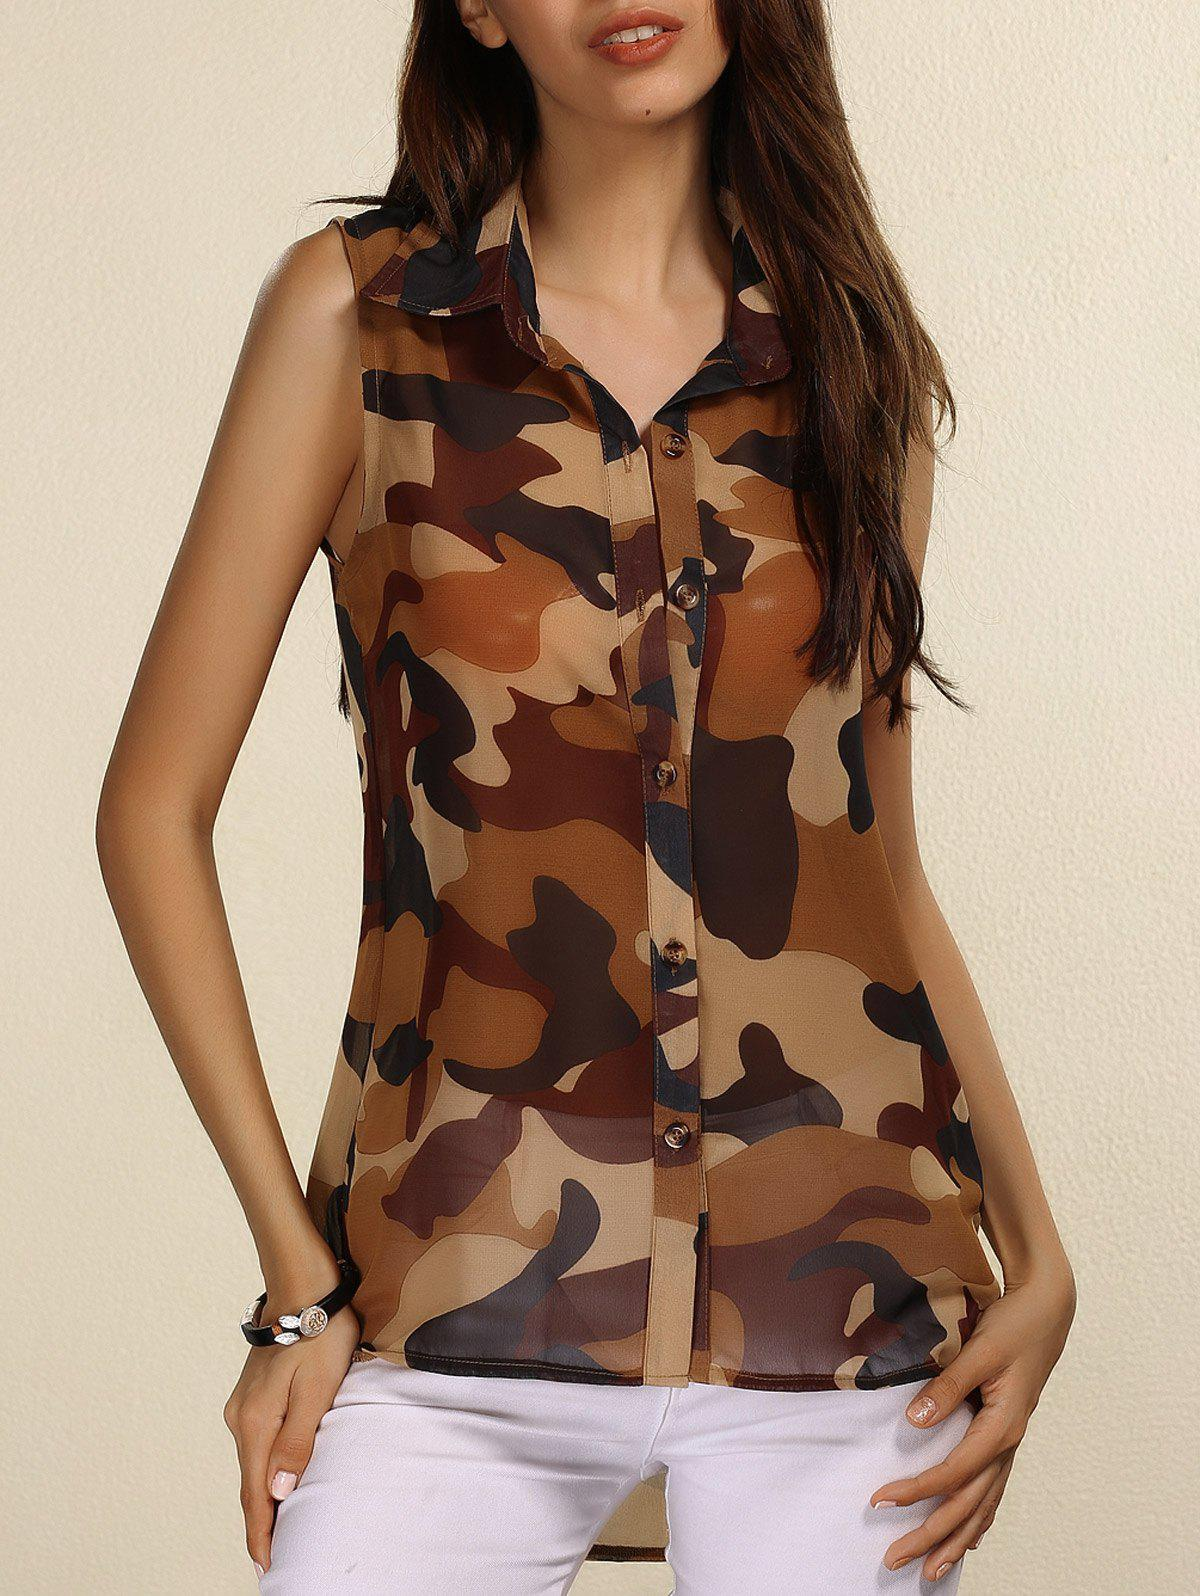 Shirt Collar Sleeveless Camouflage Print See-Through Women's Blouse